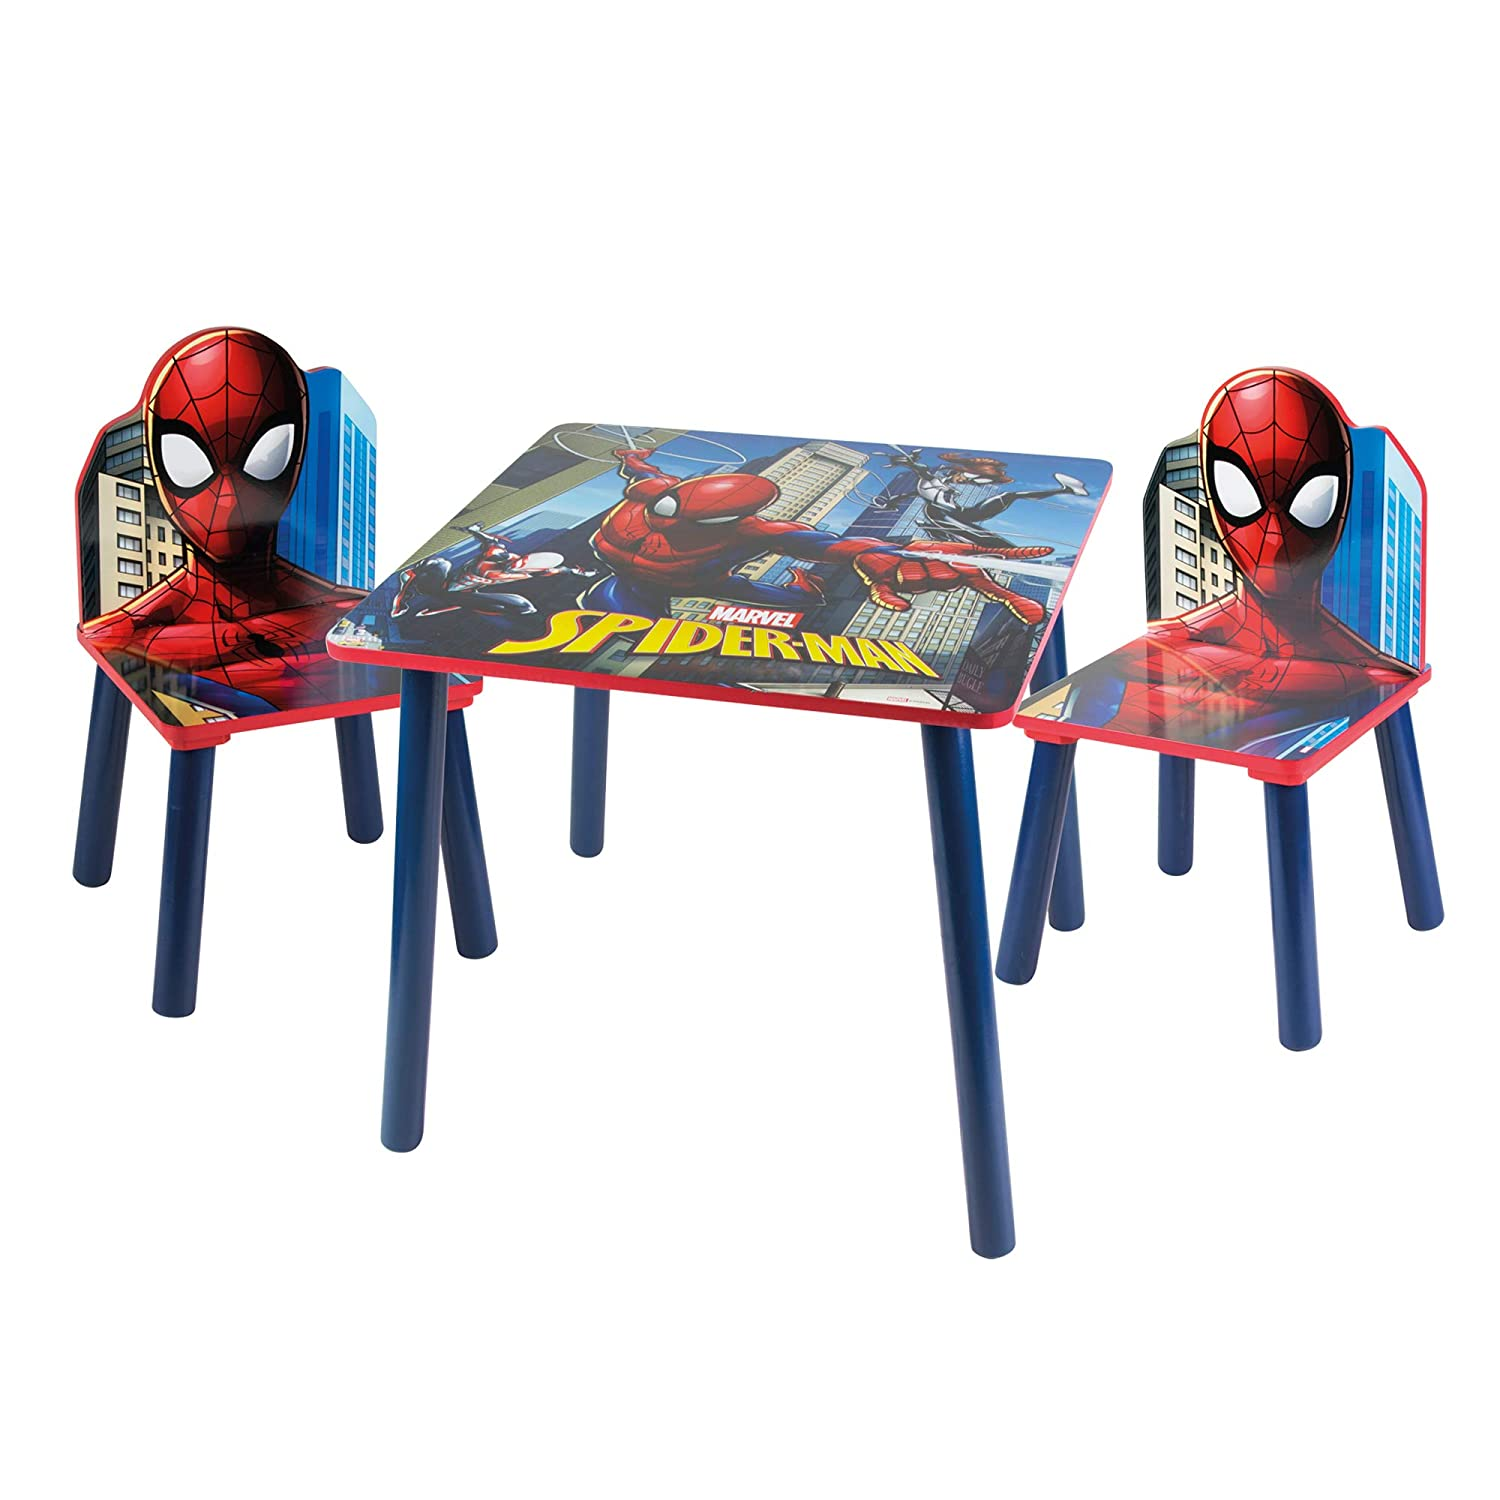 Pink Paw Patrol Themed Wooden Kids Table /& Chairs Set